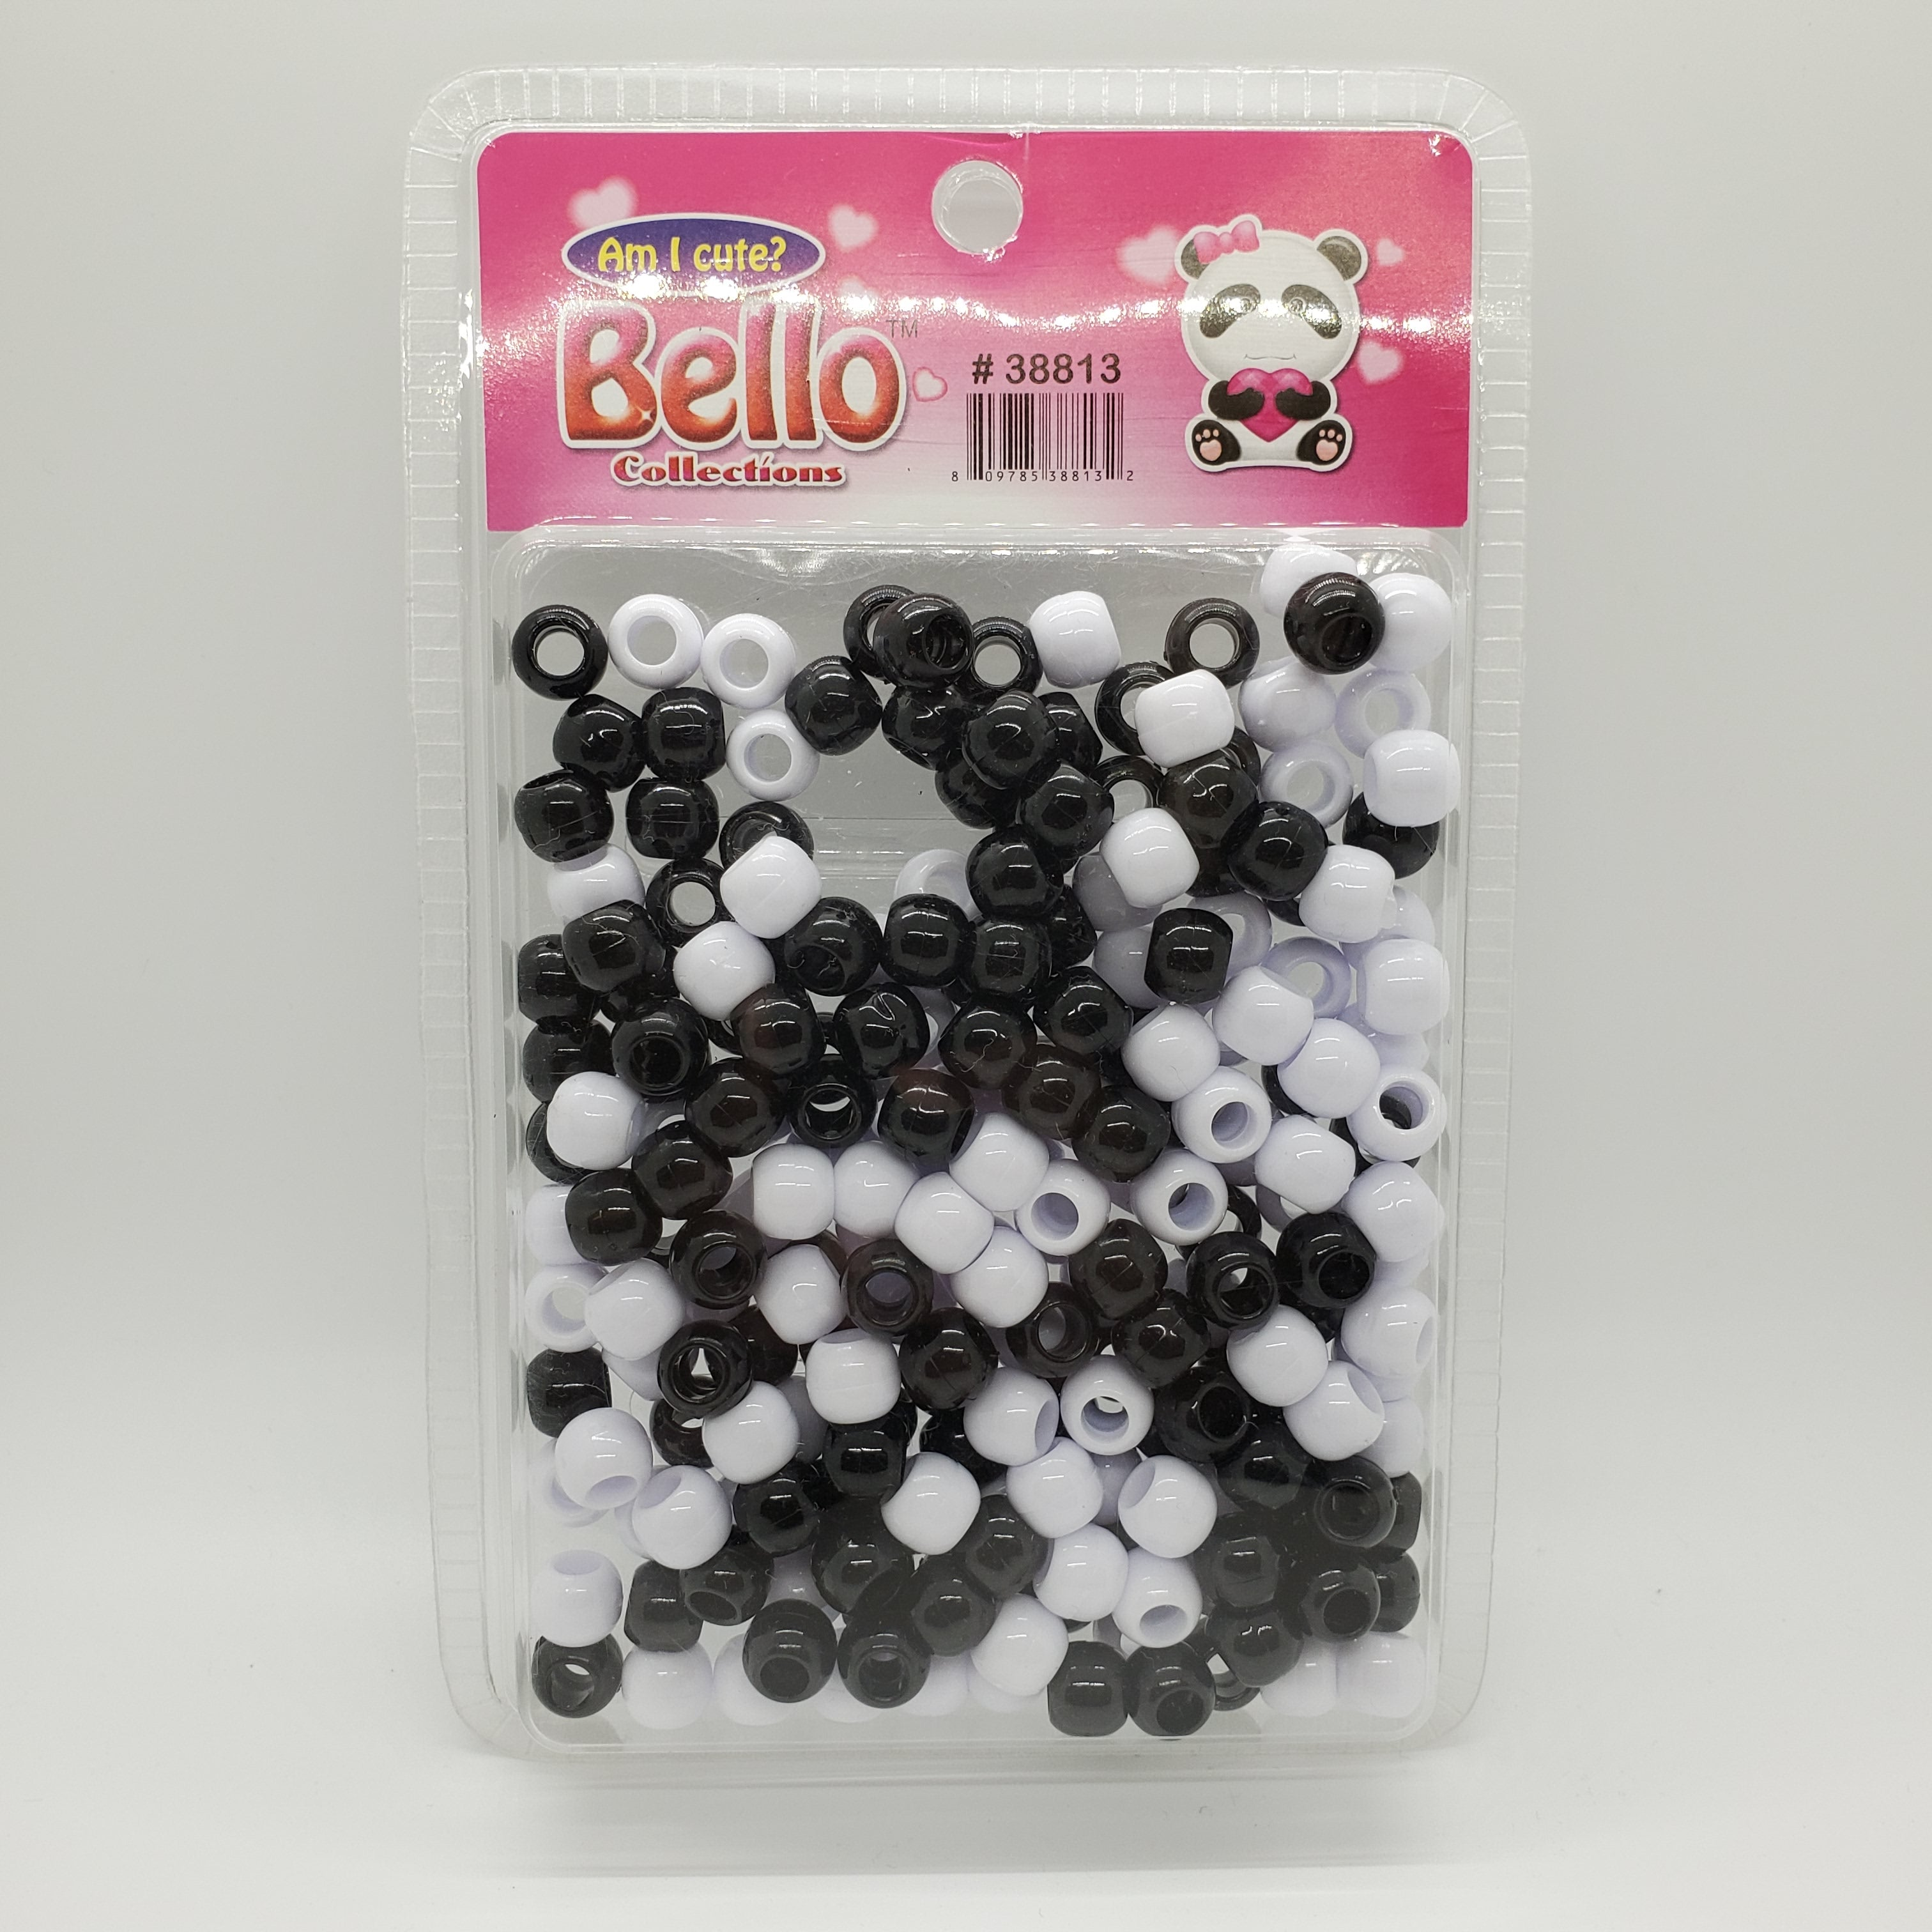 Bello Collections Jumbo Beads Black/White #33813 - Beauty Bar & Supply